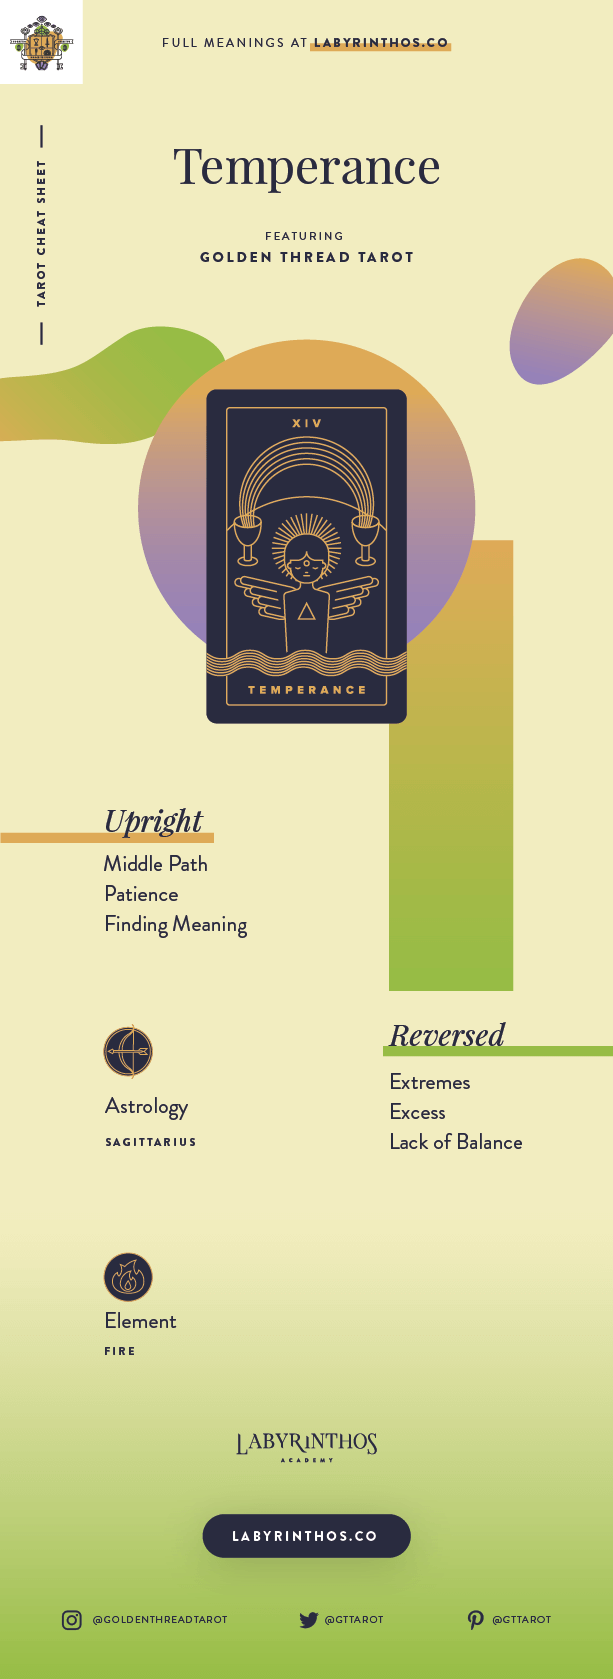 Temperance Meaning - Tarot Card Meanings Cheat Sheet